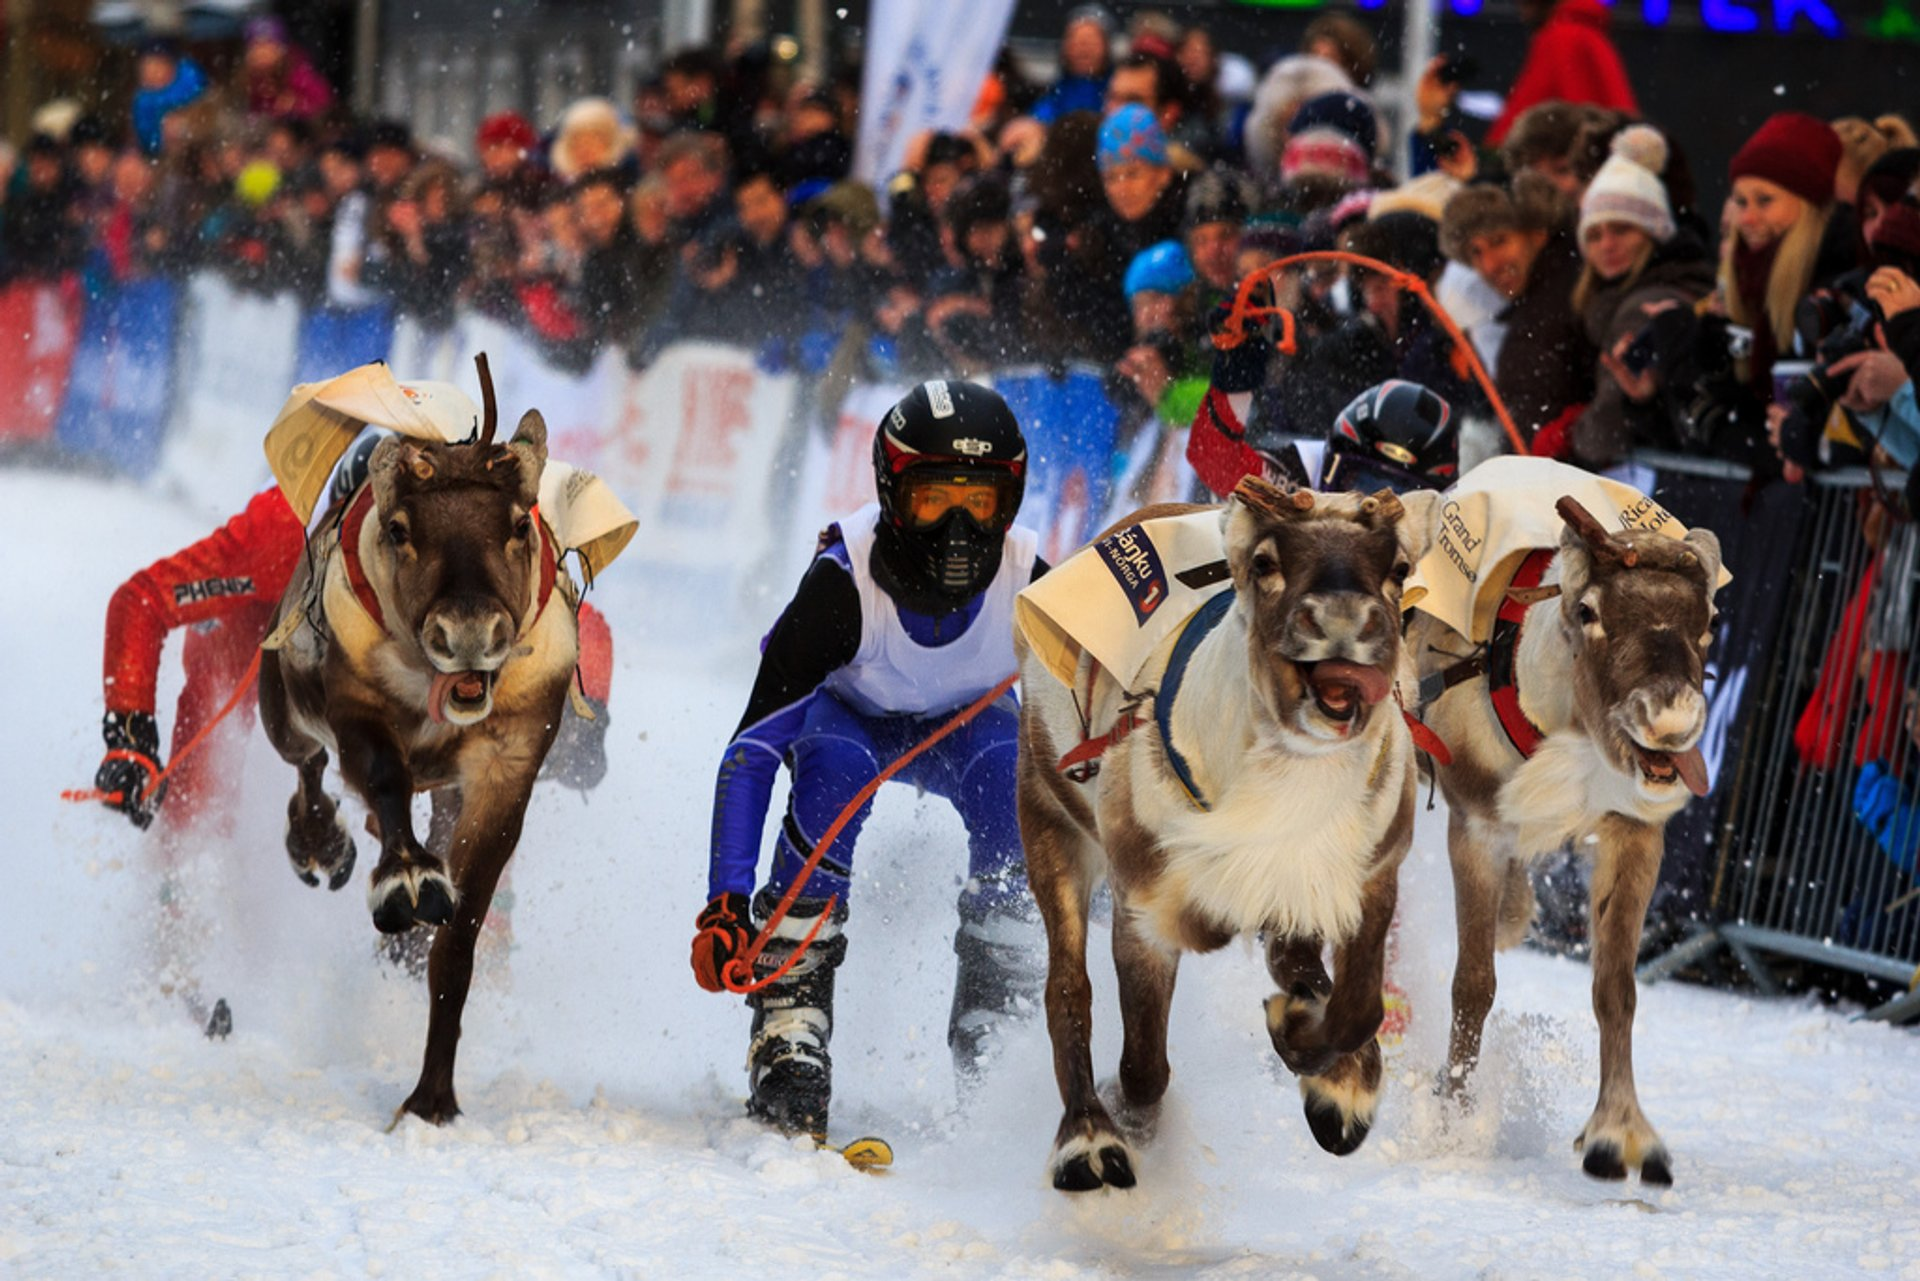 World Reindeer Racing Championships in Norway 2019 - Best Time